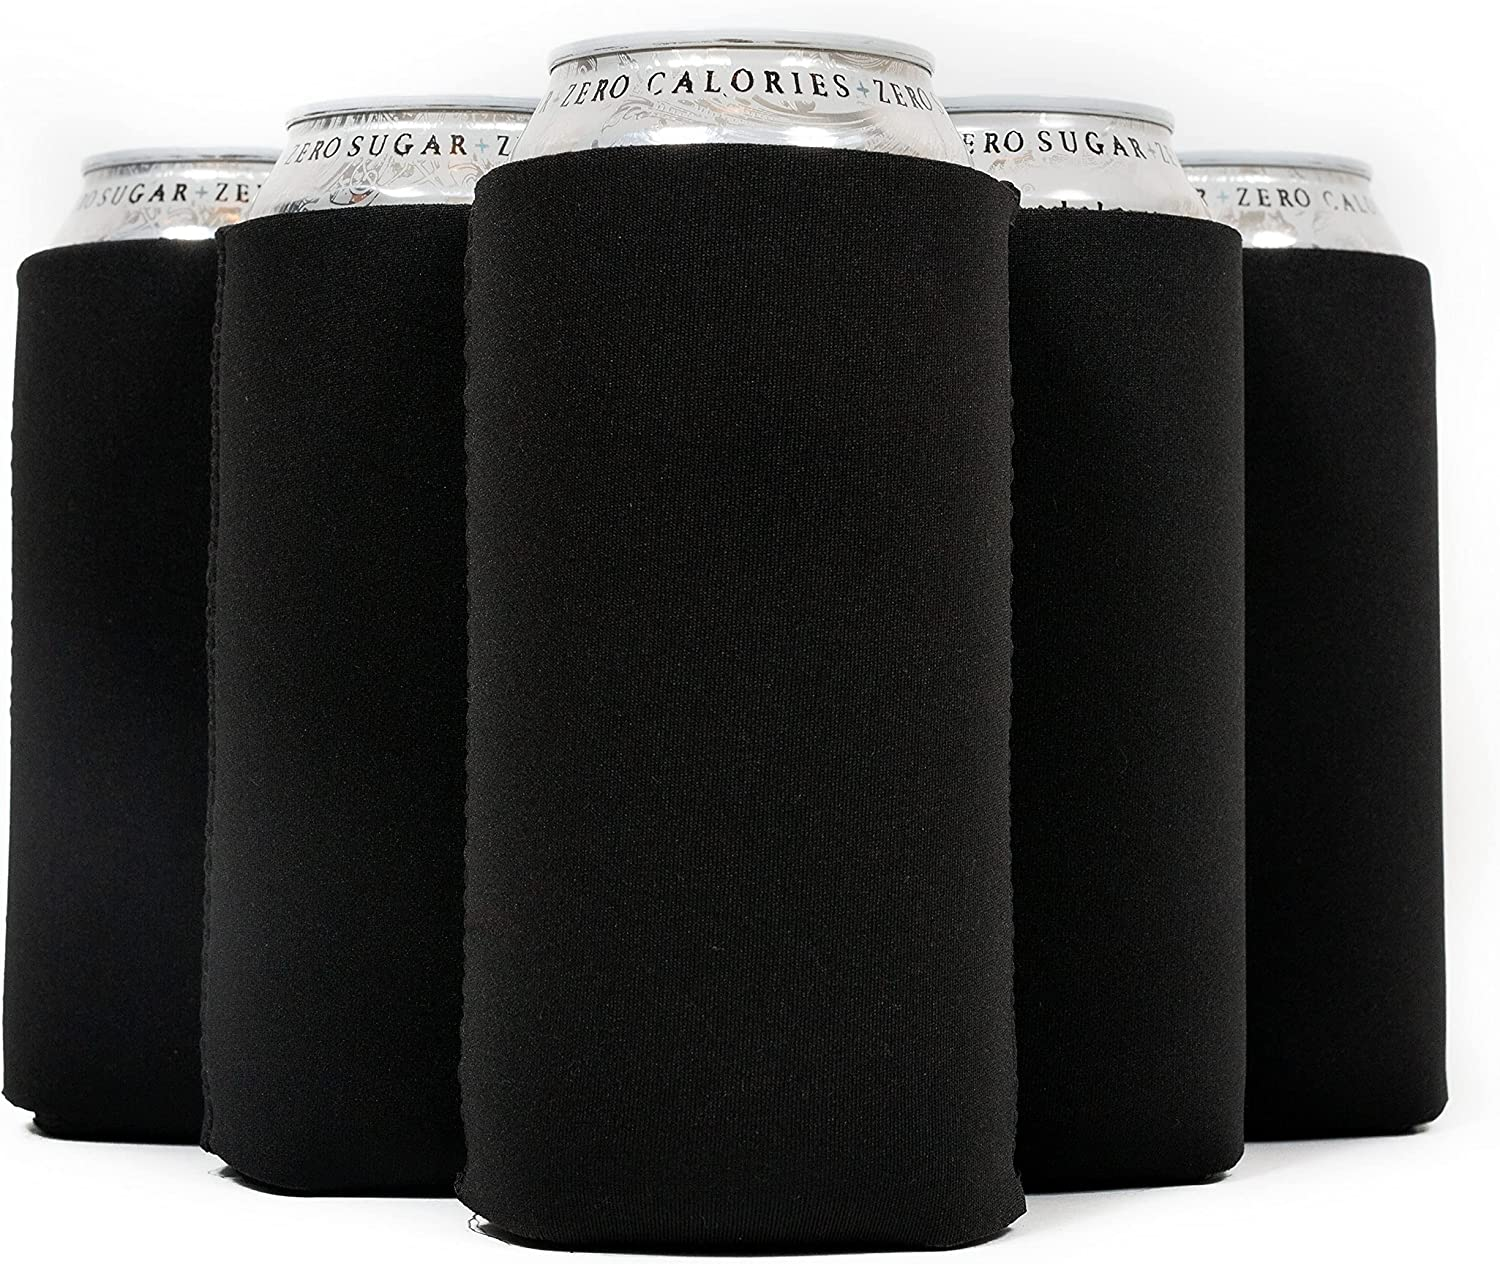 QualityPerfection 6 Black Can Cooler - Blank Sleeves High Bombing free shipping order Neoprene Be